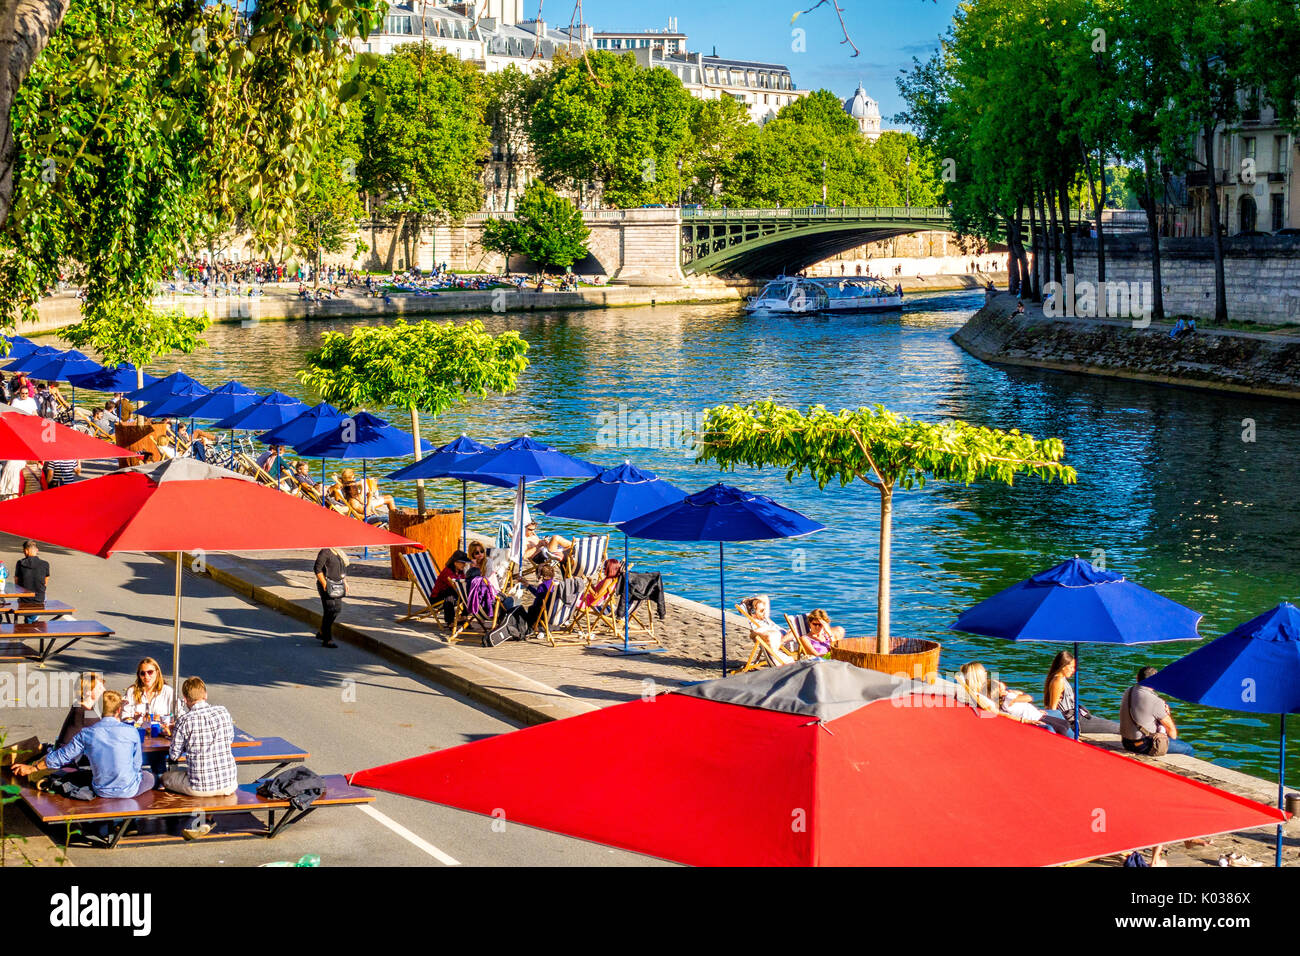 Crowds of people enjoy a summer day during the Paris Plages - Stock Image